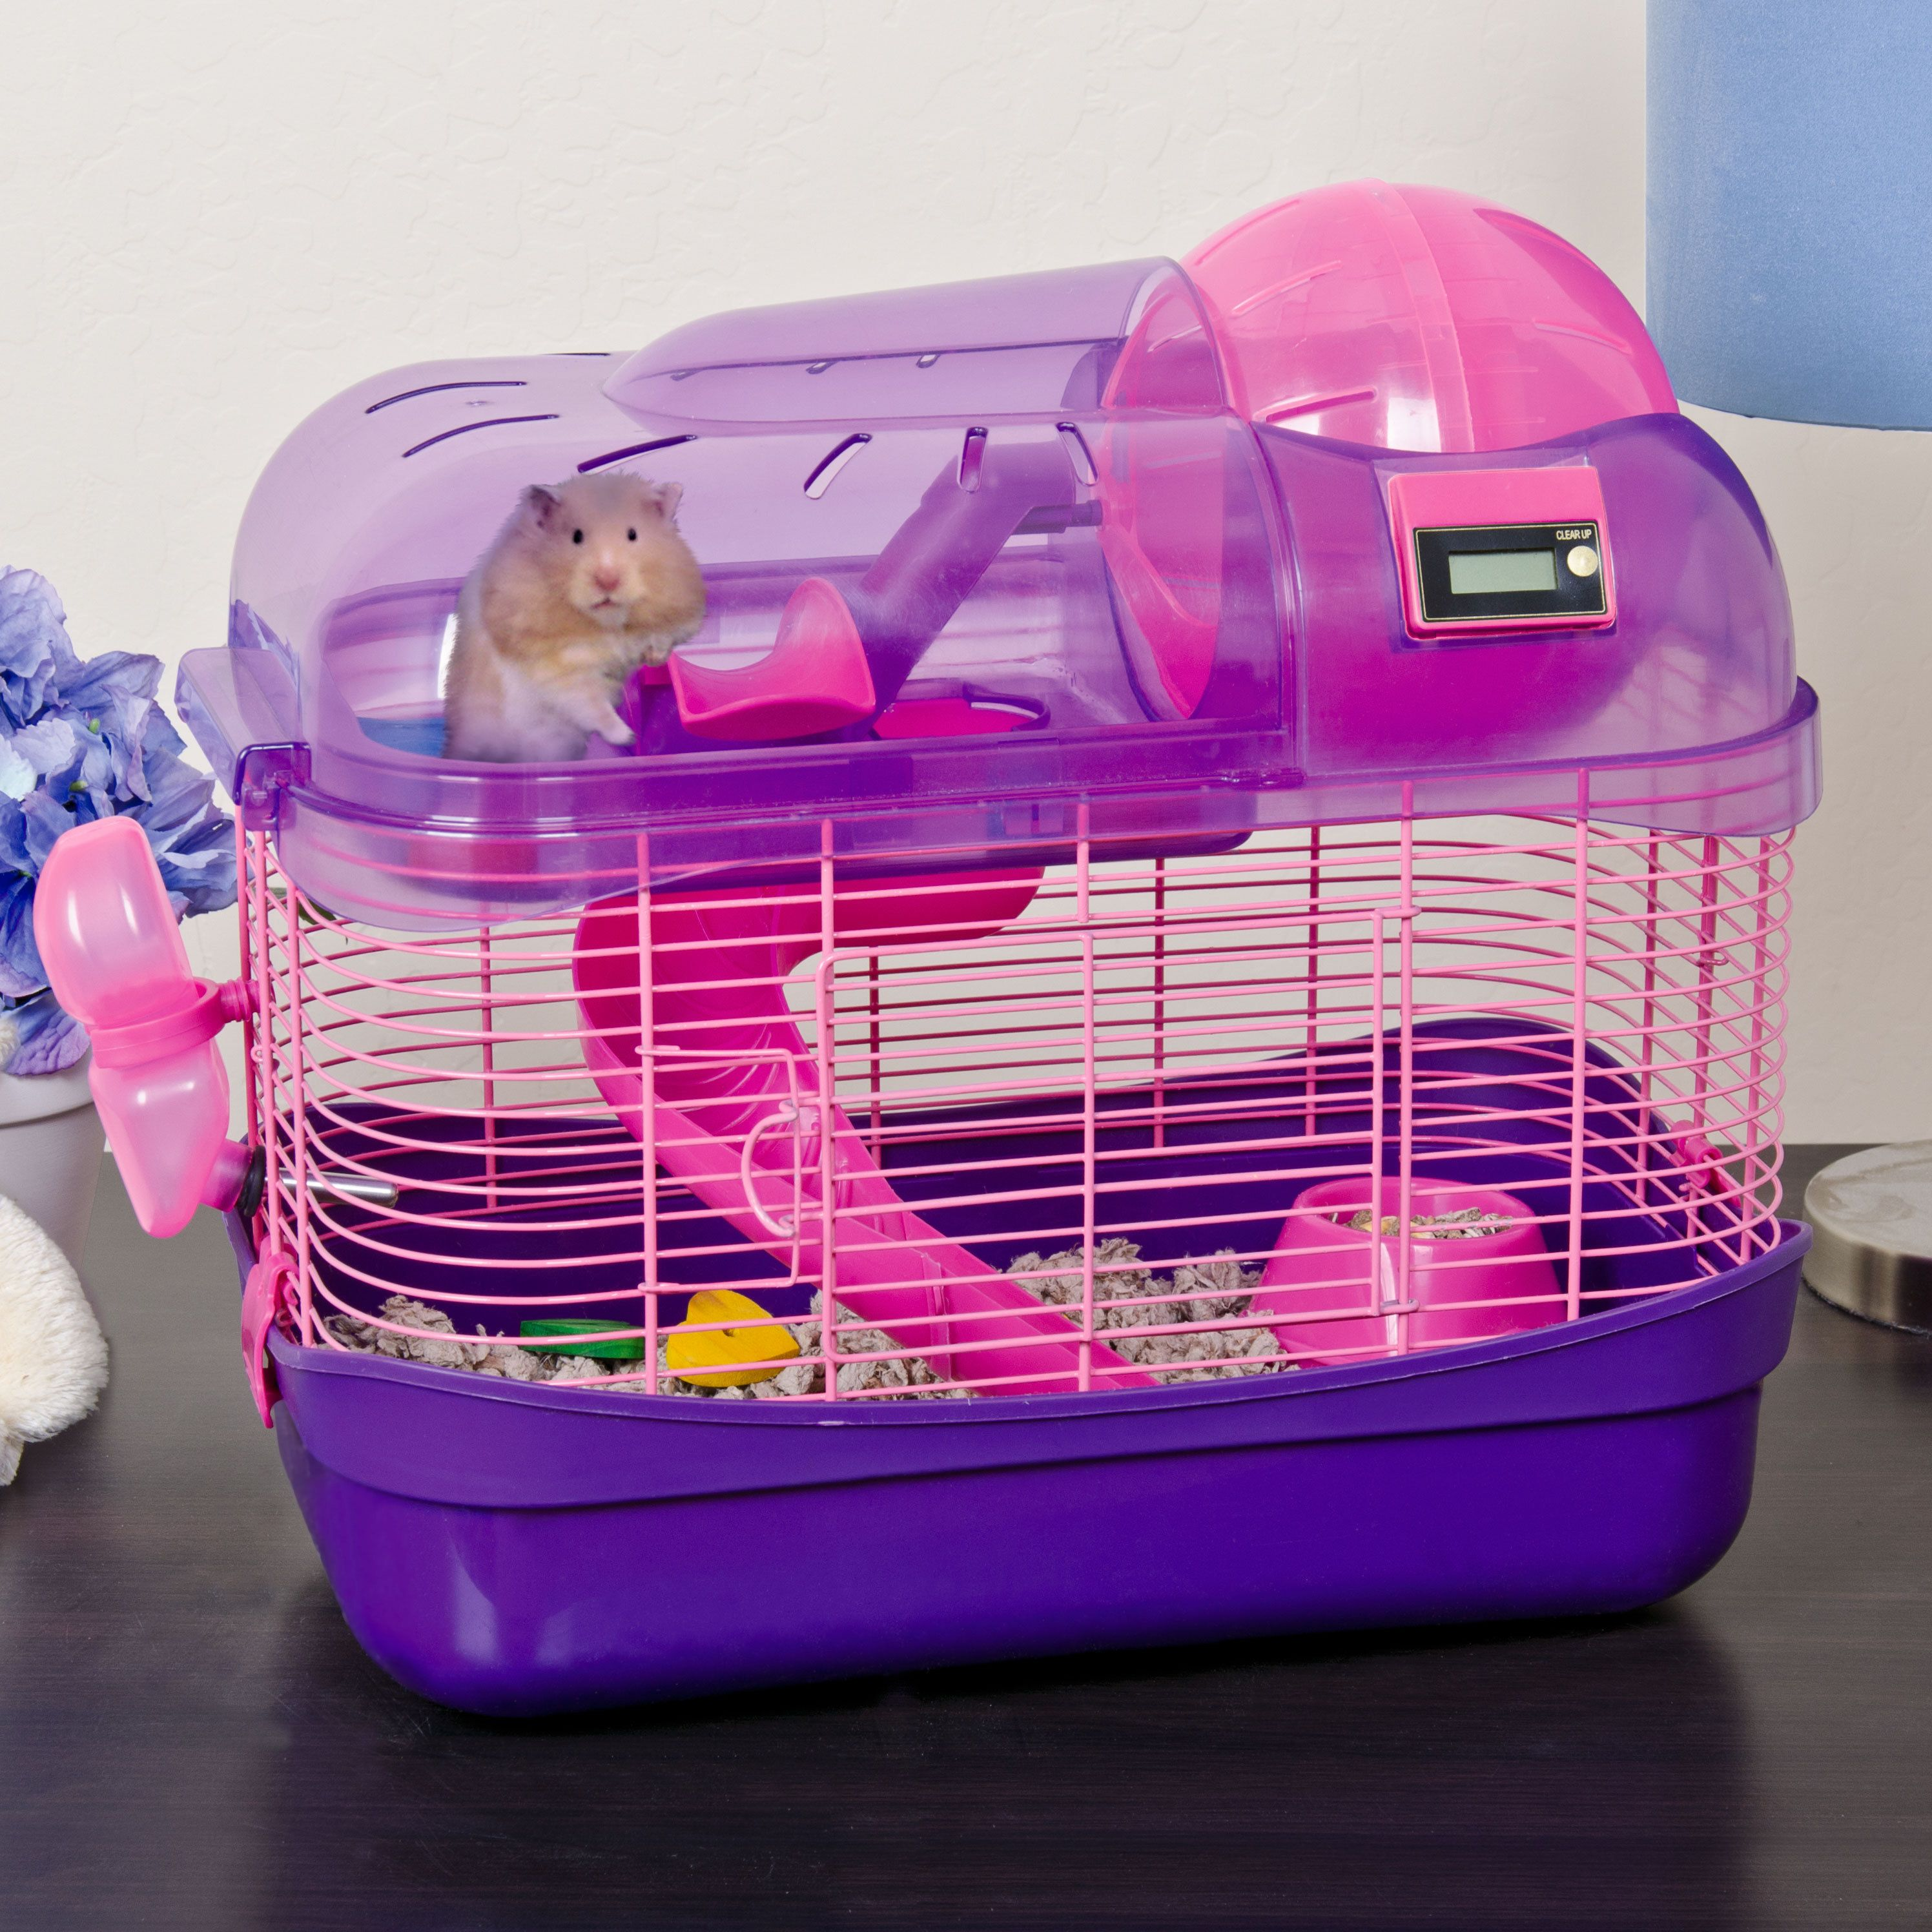 Ware spin city health club hamster cage purple spin for Plastic bin guinea pig cage